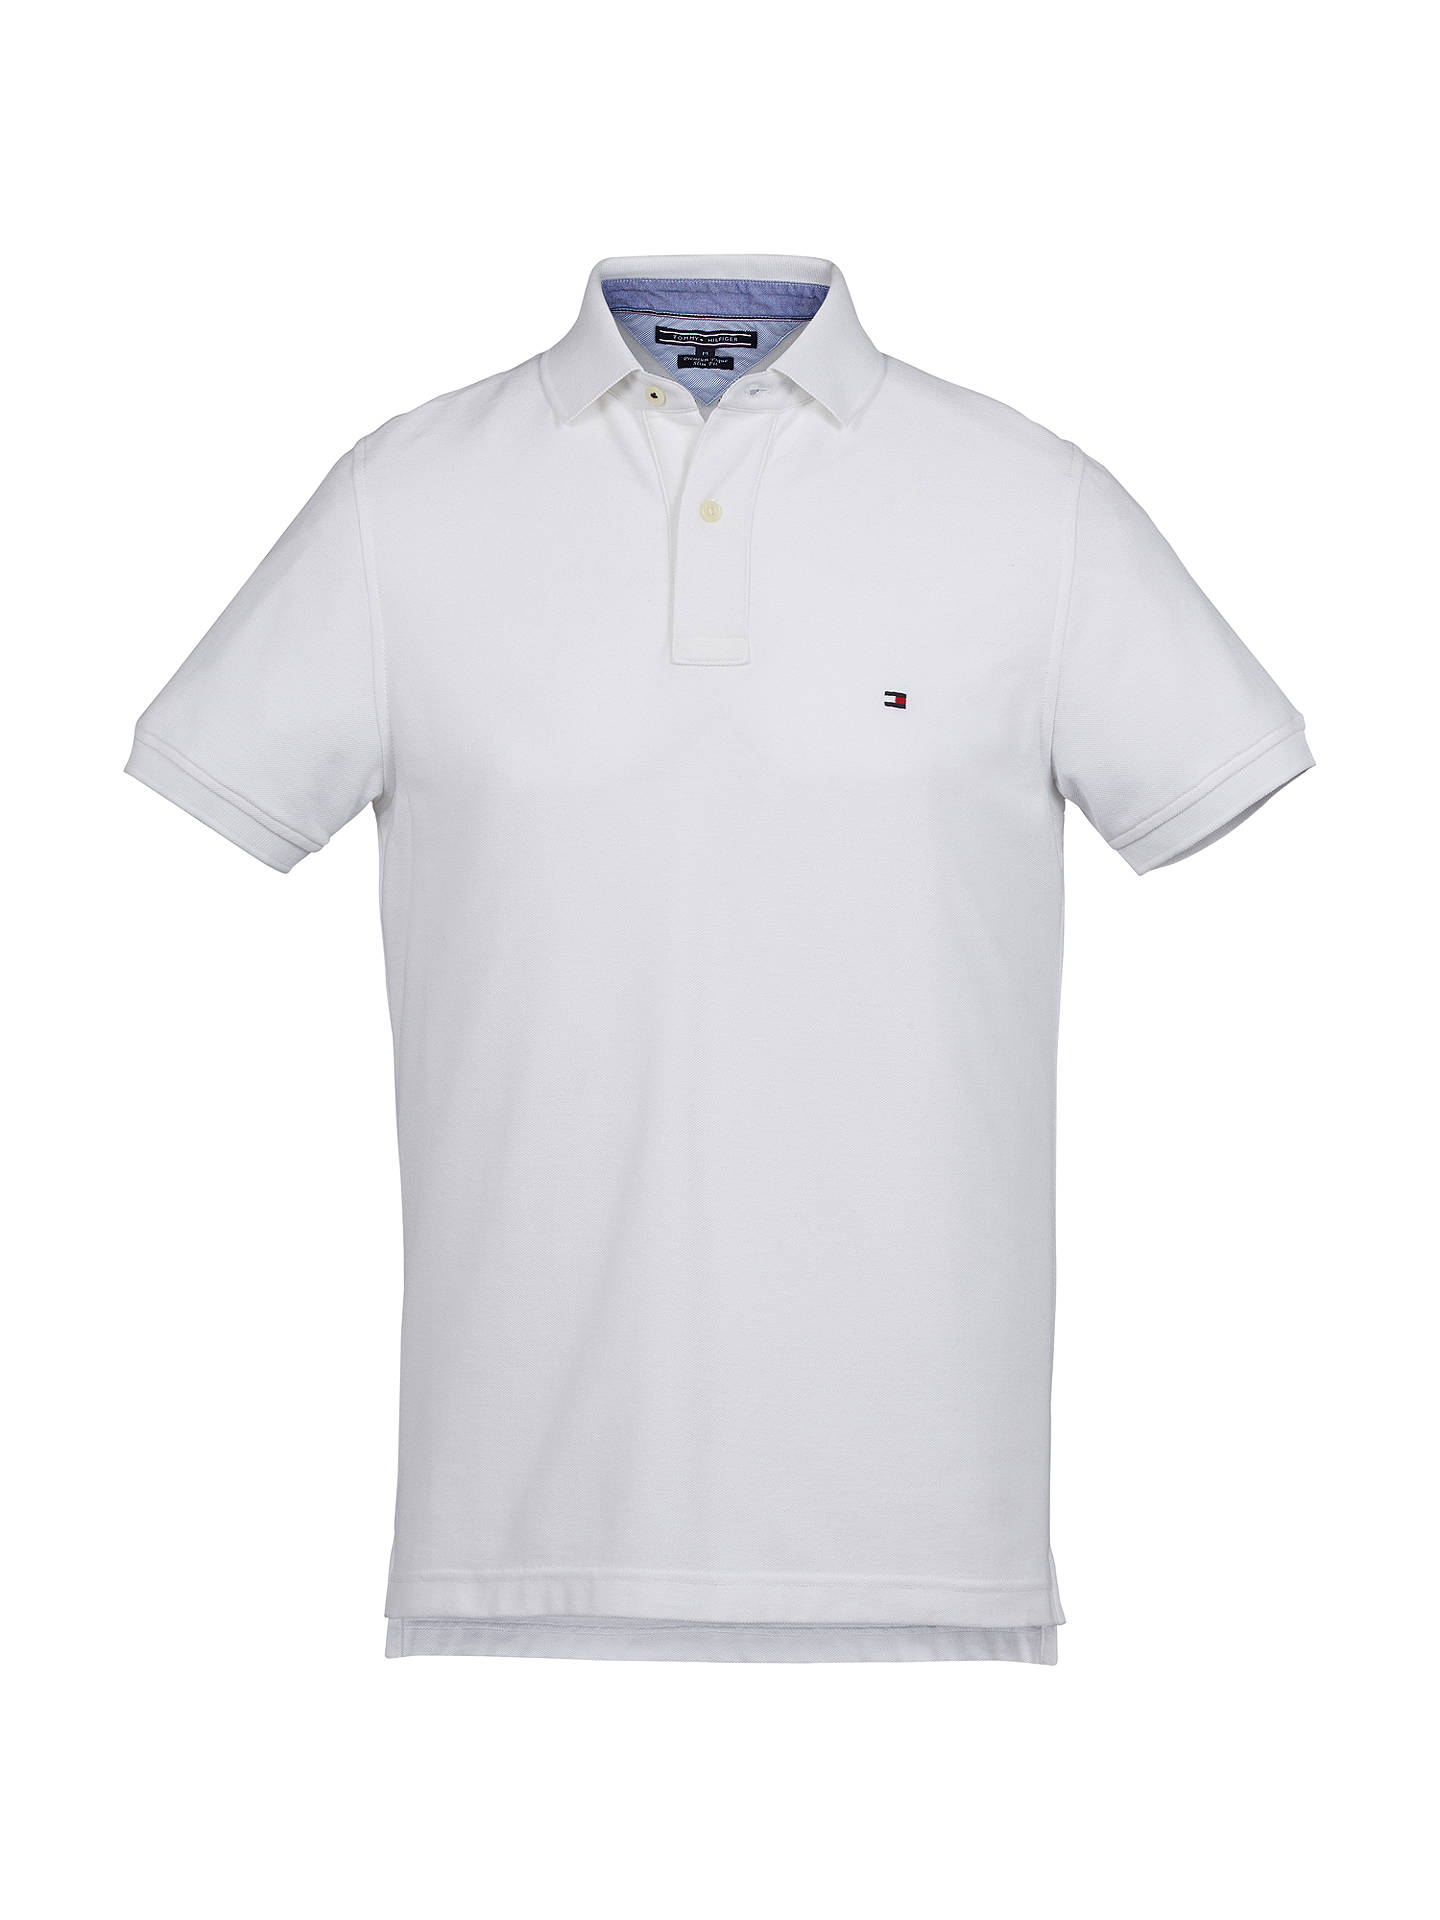 Tommy Hilfiger Slim Polo Shirt at John Lewis & Partners